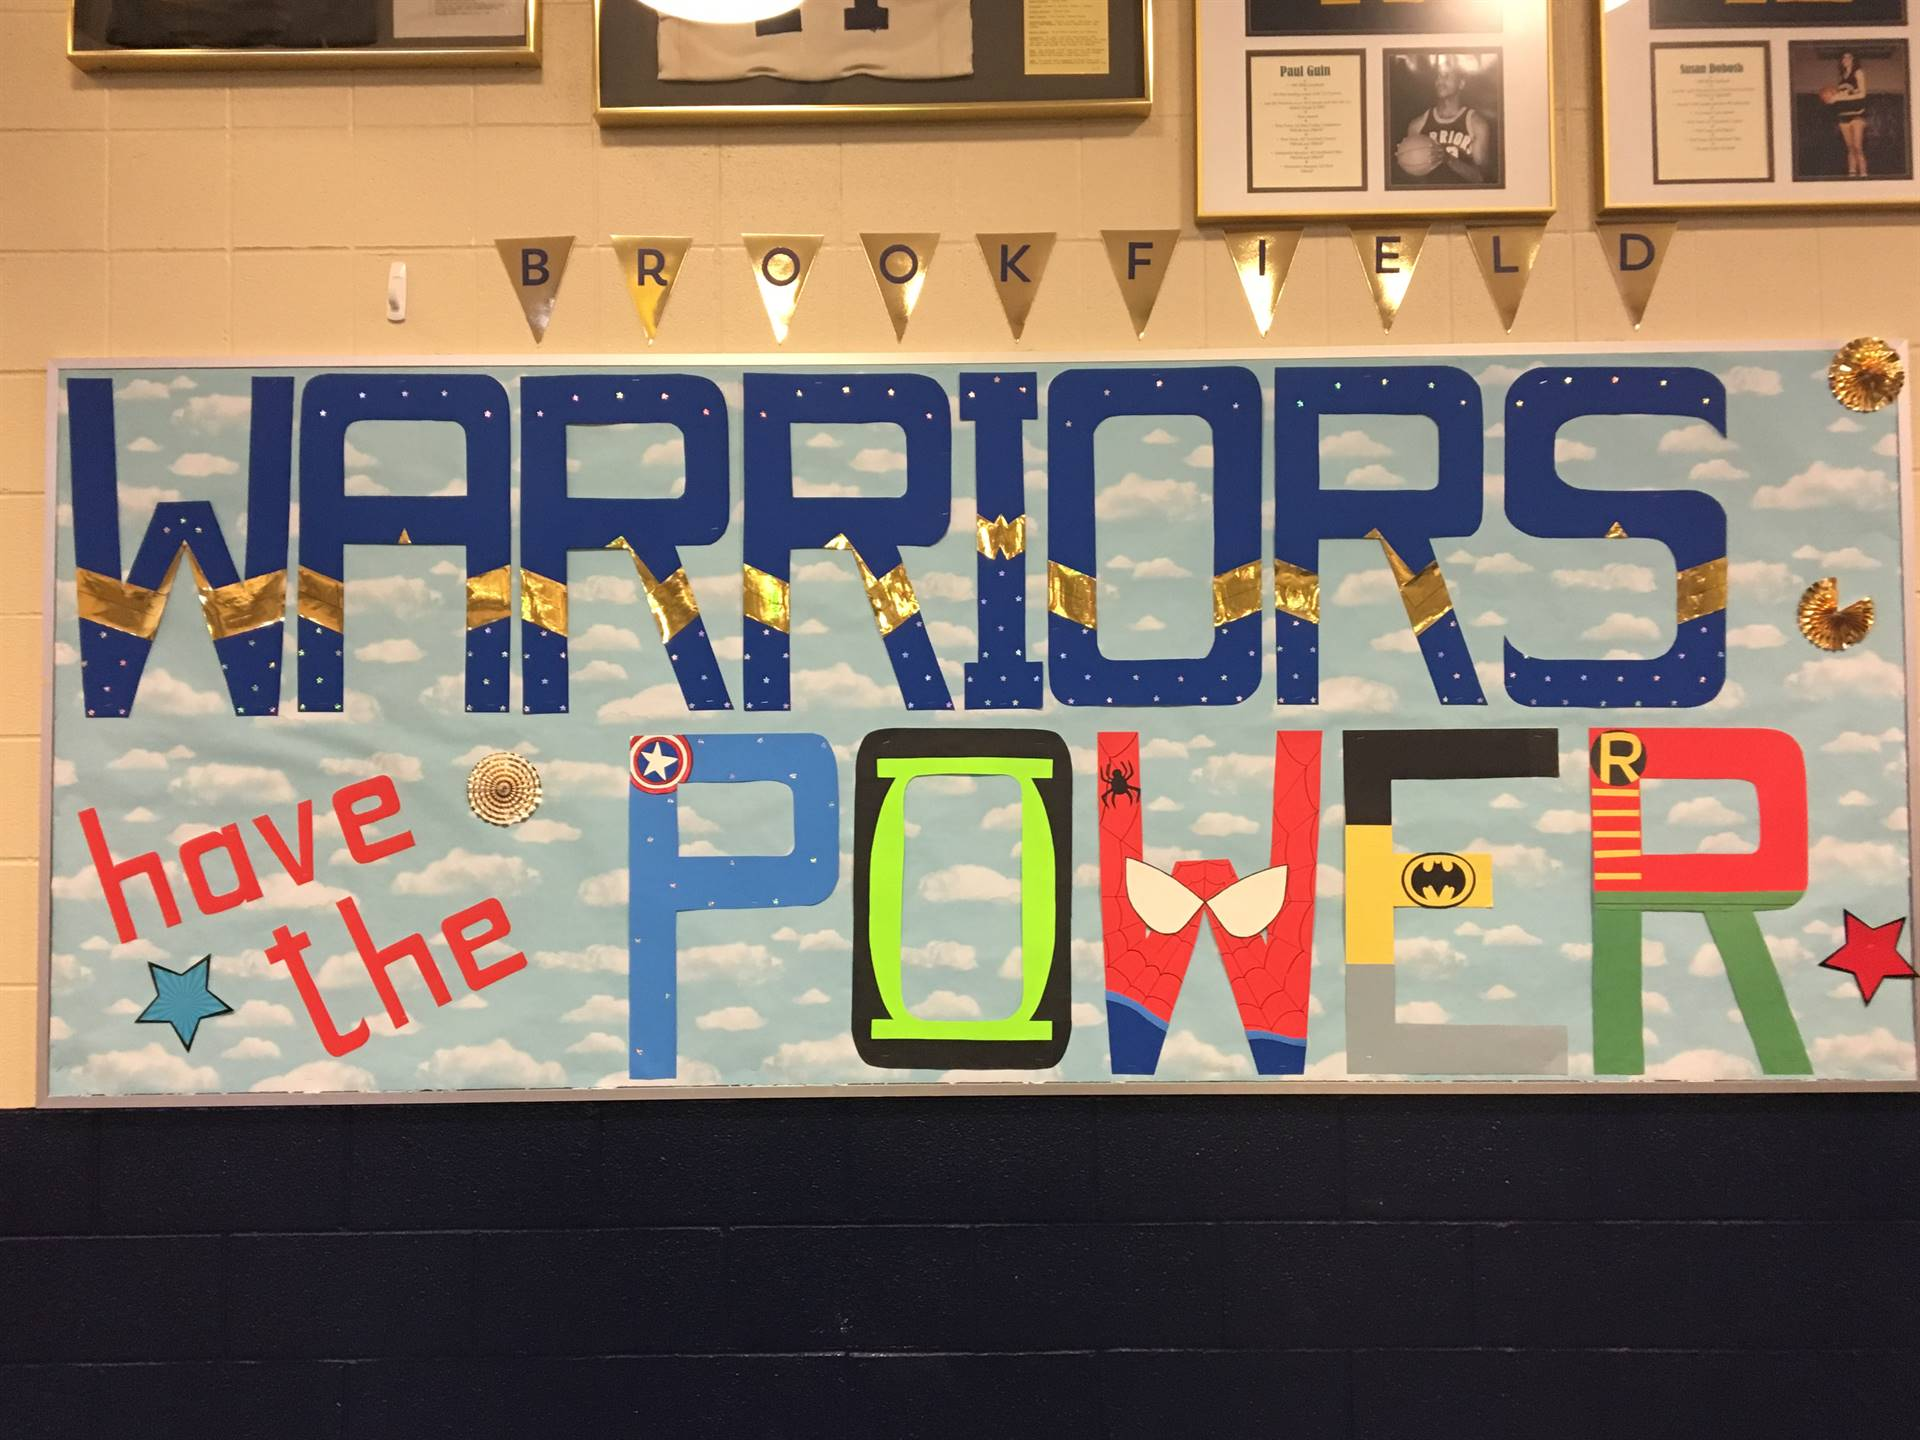 Warriors have the power painted in the lunchroom